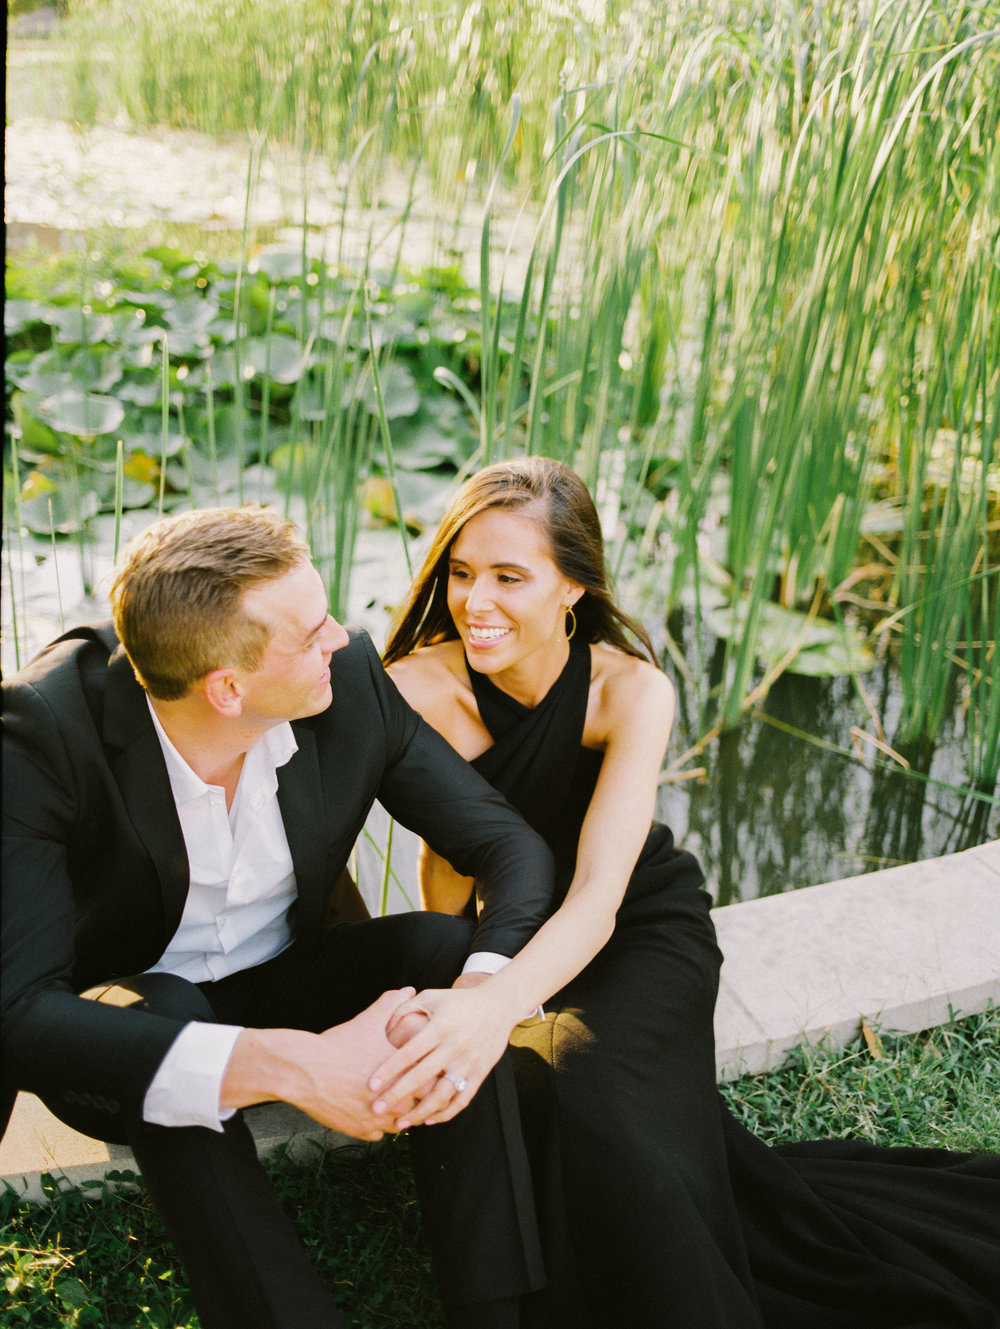 An elegant St. Louis, Mo engagement session with Ashley Pieper Photography. Cristina and Will are a match made in heaven. They are giggly and fun and totally in love! St. Louis based traveling and destination wedding photographer for the genuine and creative couple in love.